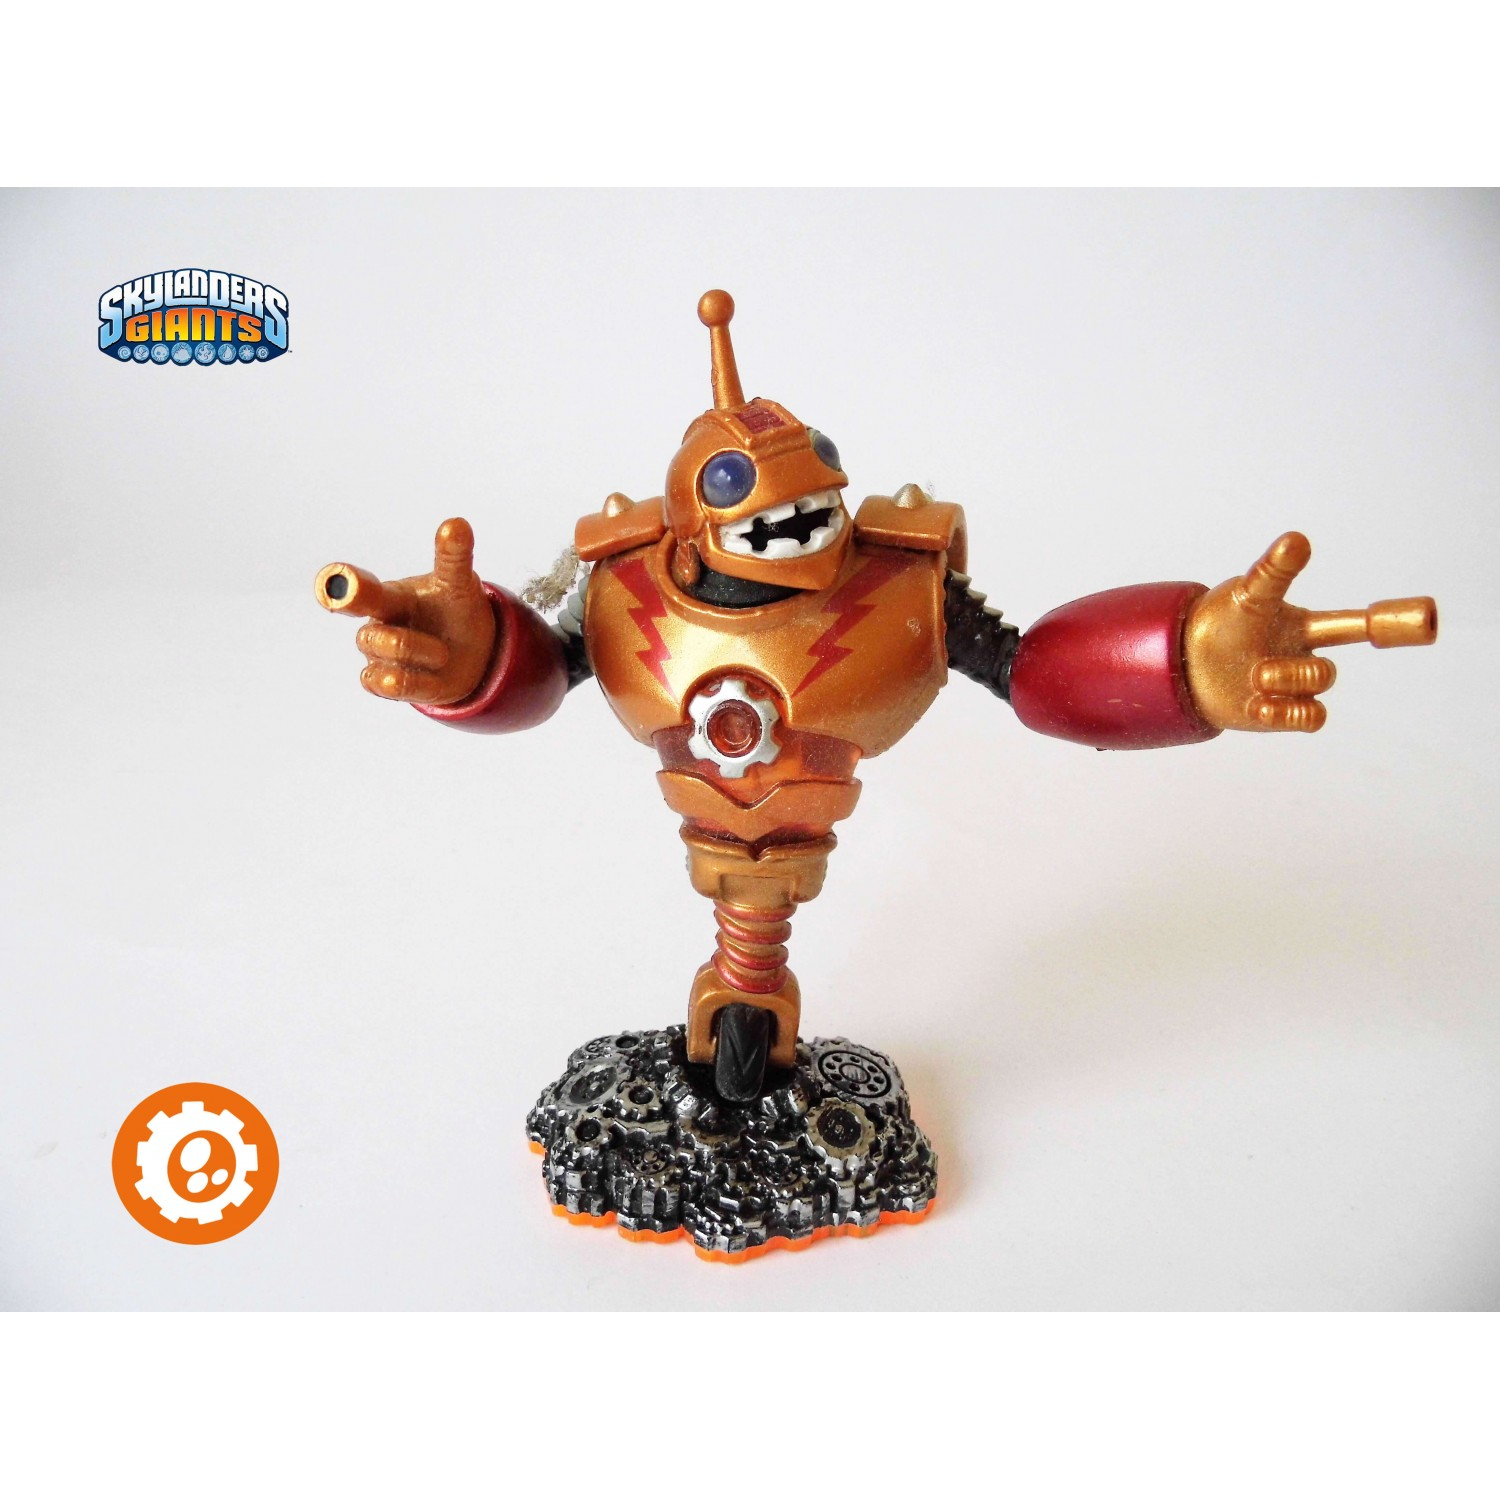 Skylanders Giants - Bouncer játékfigura (Giant)